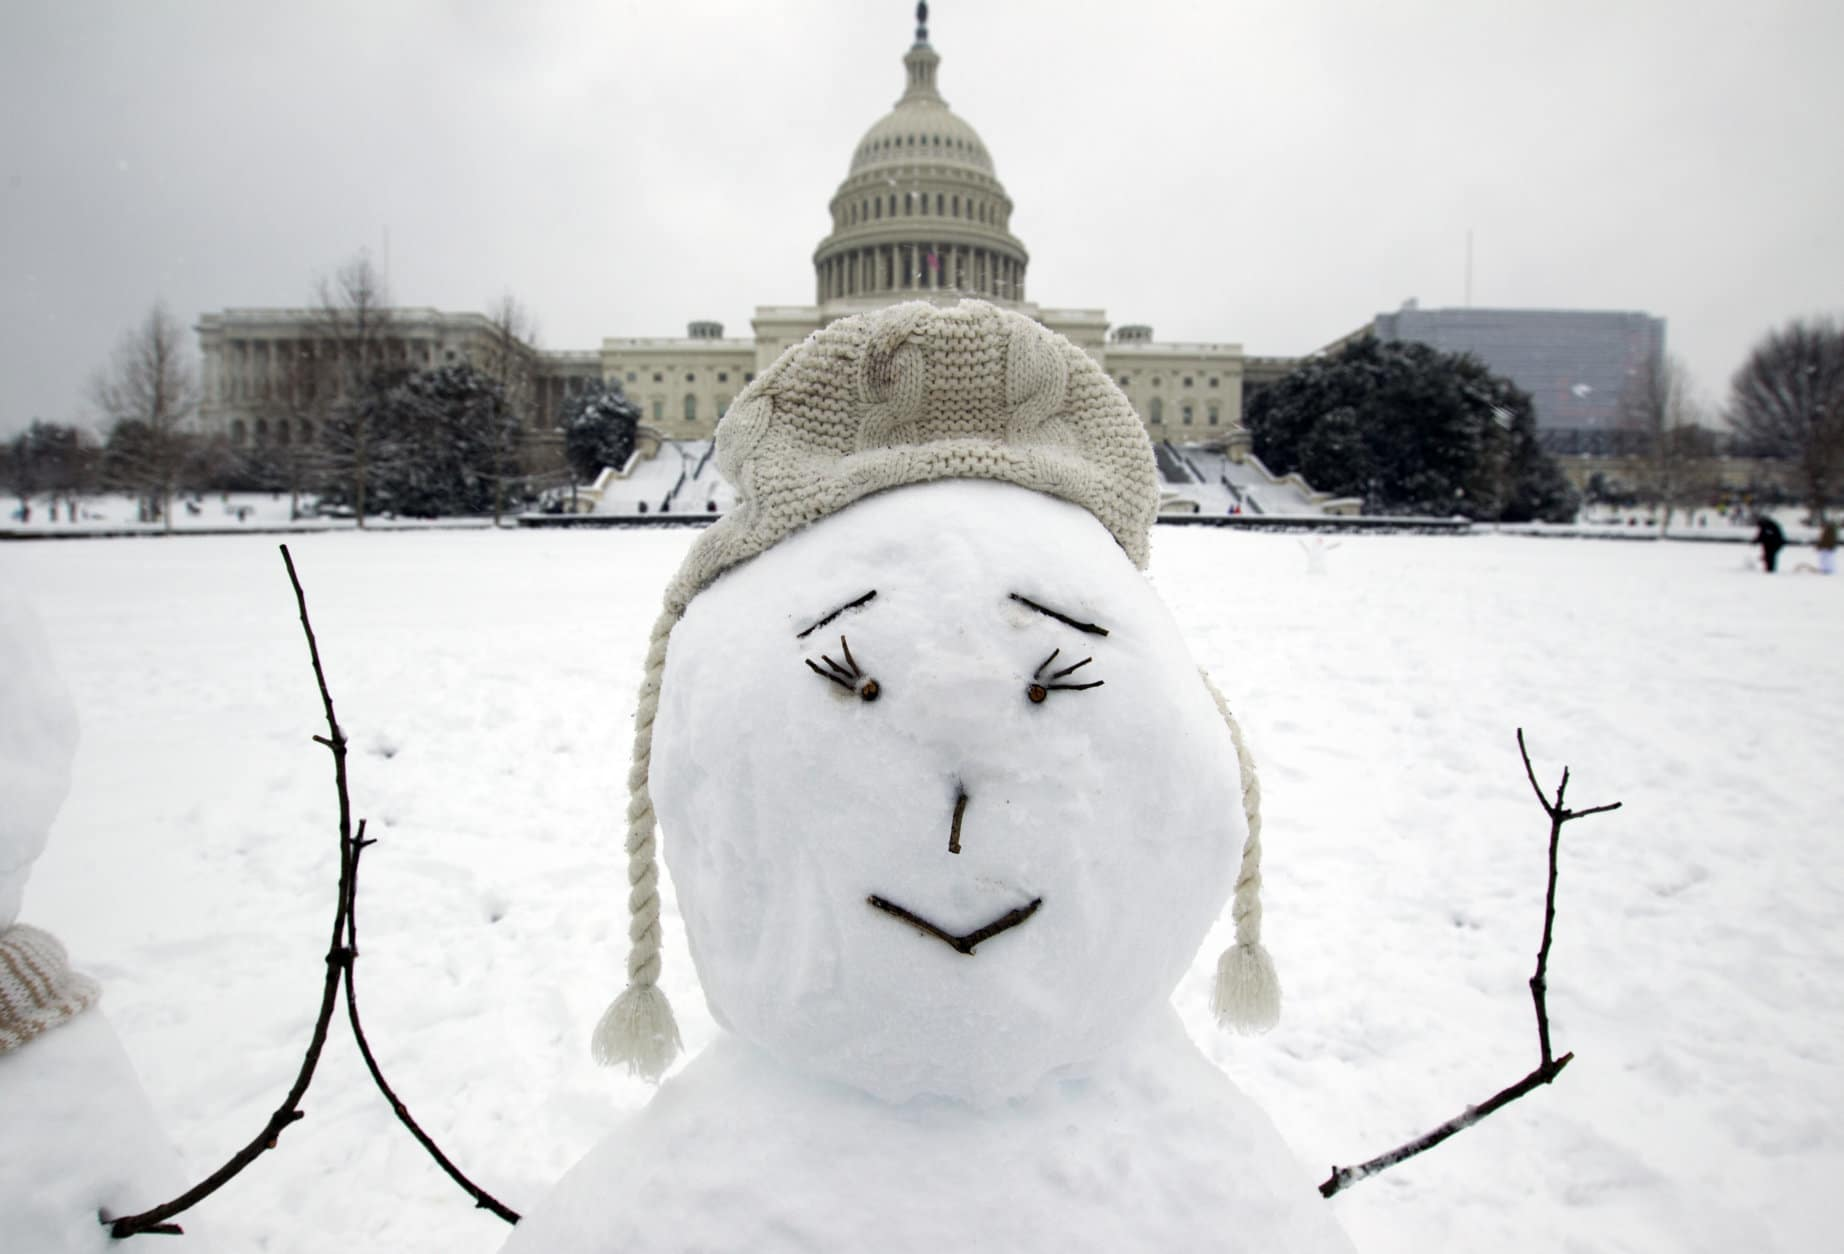 The U.S. Capitol is seen behind a snowman during a snowstorm, as a partial government shutdown stretches into its third week at Capitol Hill in Washington Sunday, Jan. 13, 2019. With the standoff over paying for his long-promised border wall dragging on, the president's Oval Office address and visit to the Texas border over the past week failed to break the logjam and left aides and allies fearful that the president has misjudged Democratic resolve and is running out of negotiating options. (AP Photo/Jose Luis Magana)